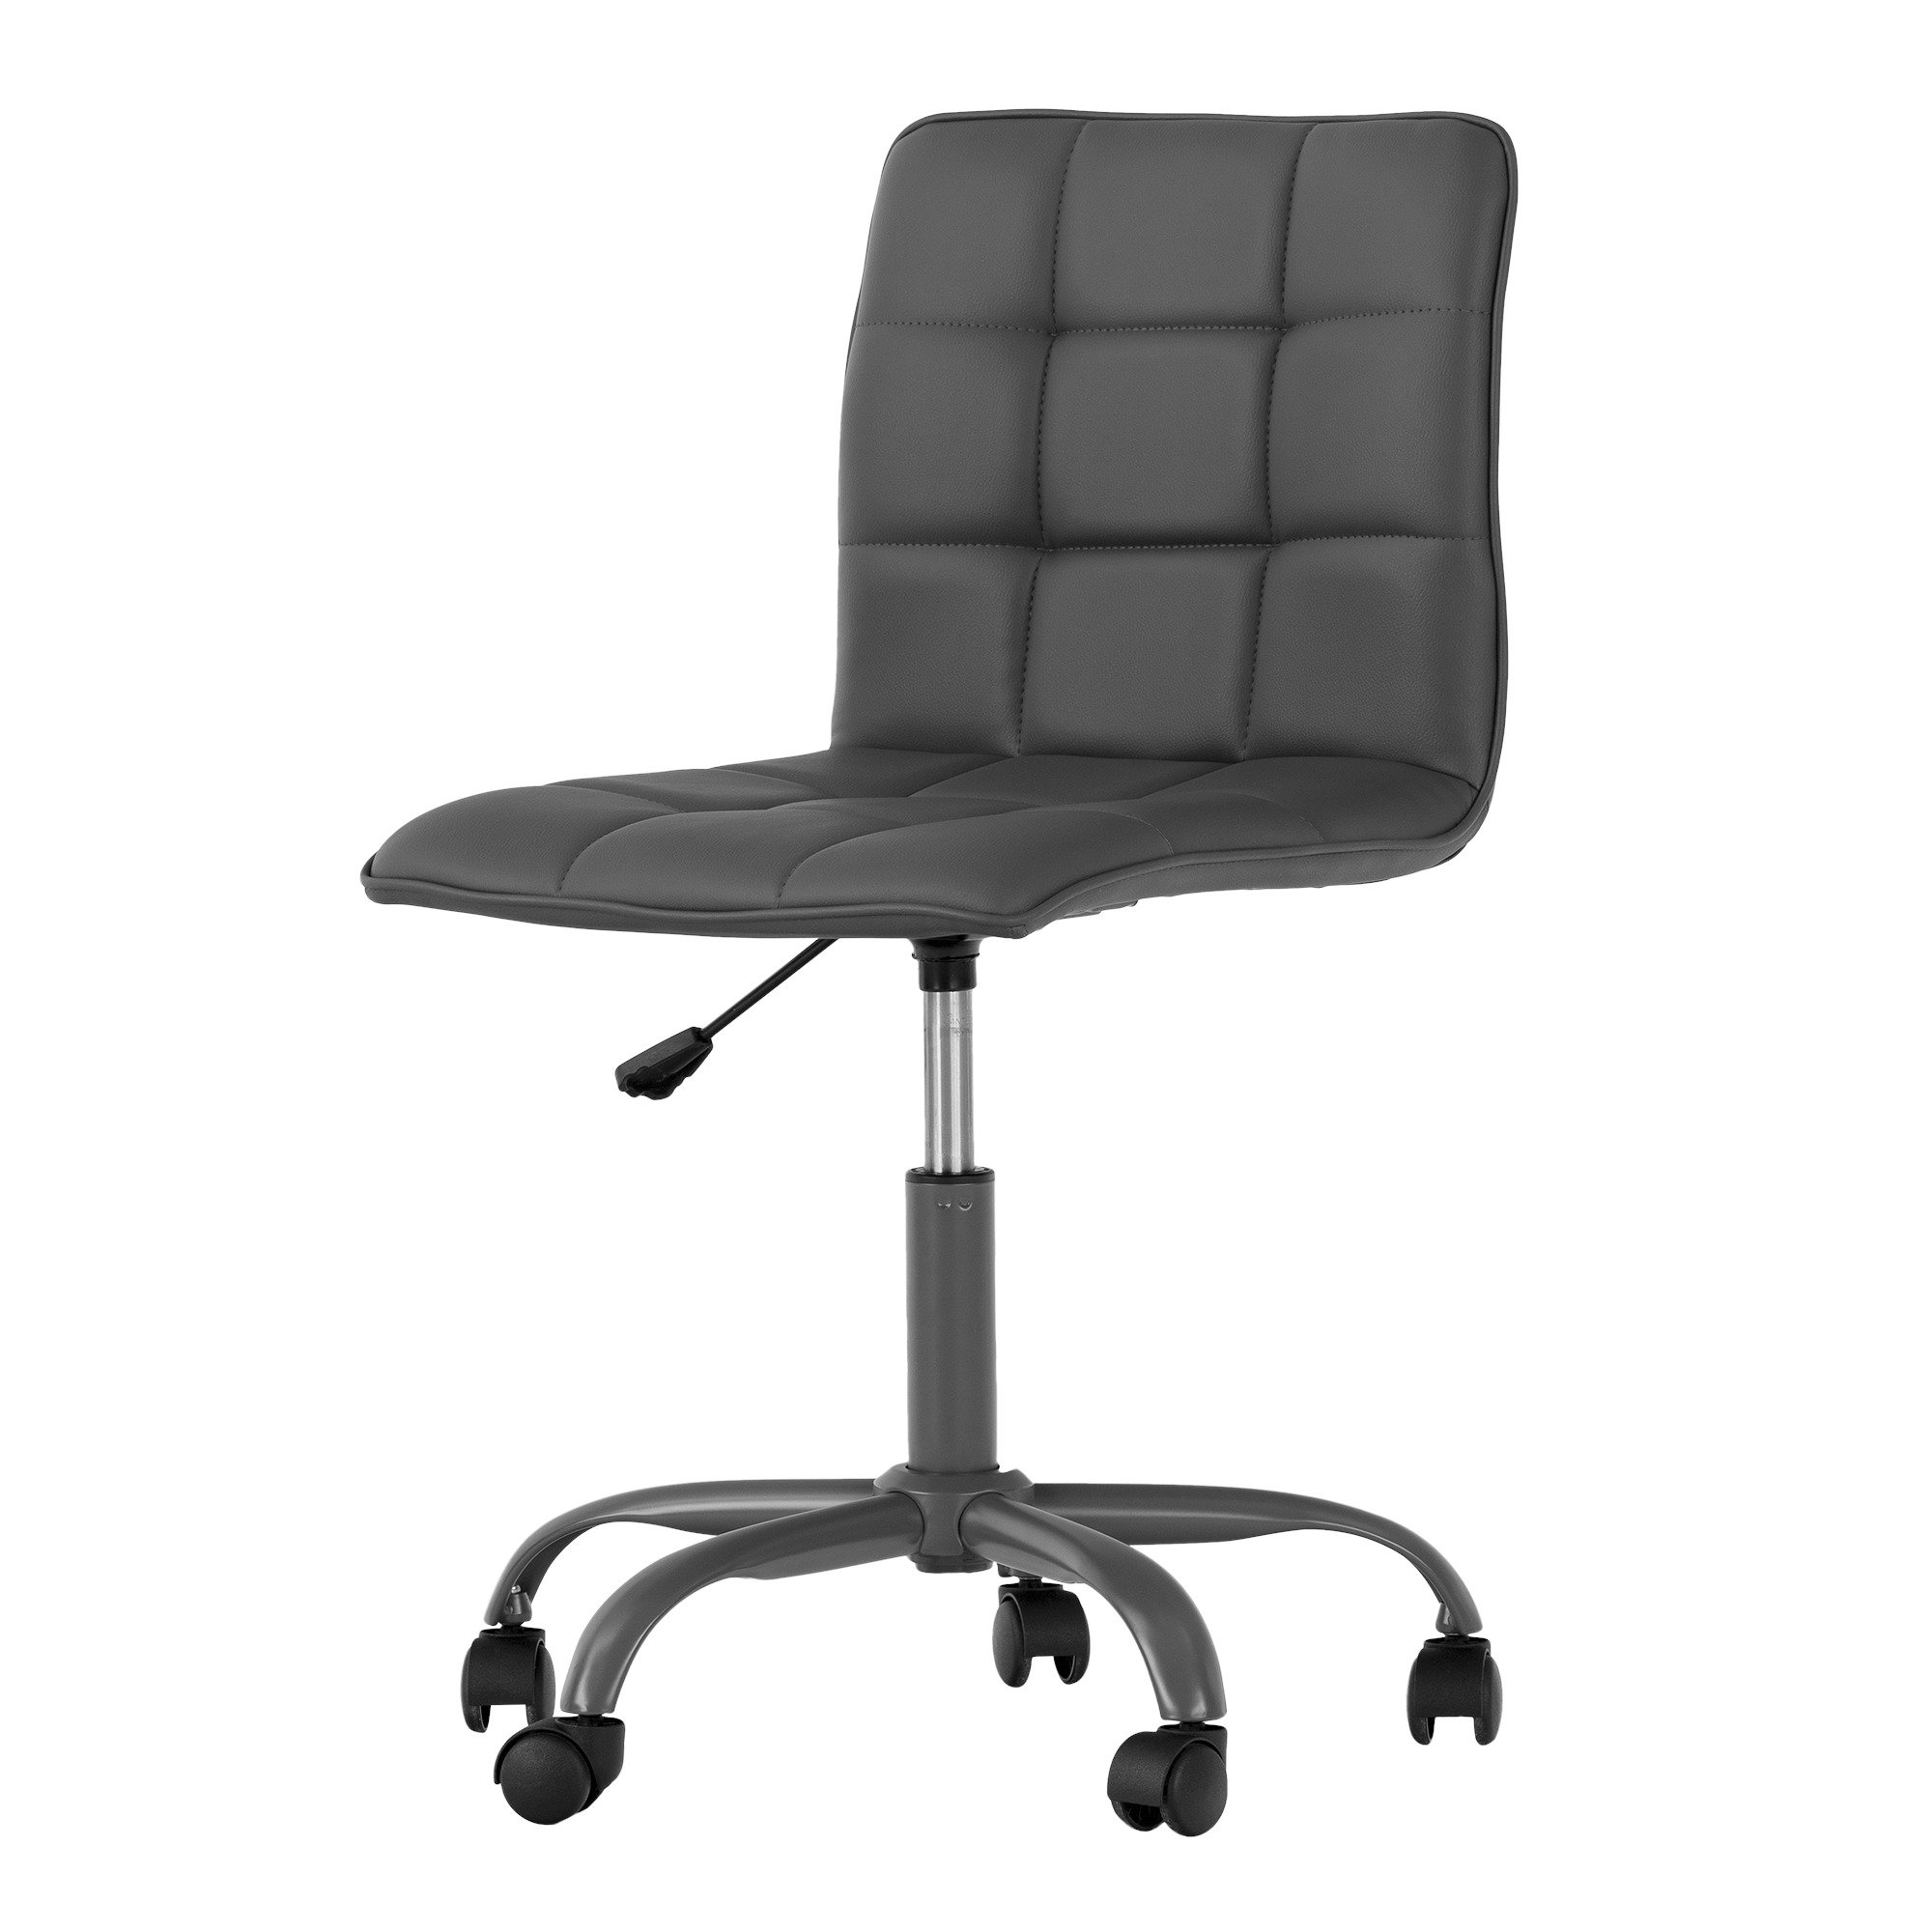 South Shore Annexe Gray Office Chair with Quilted Seat - Ergonomic Executive Office Chair - Mid Back Chair for Home Office